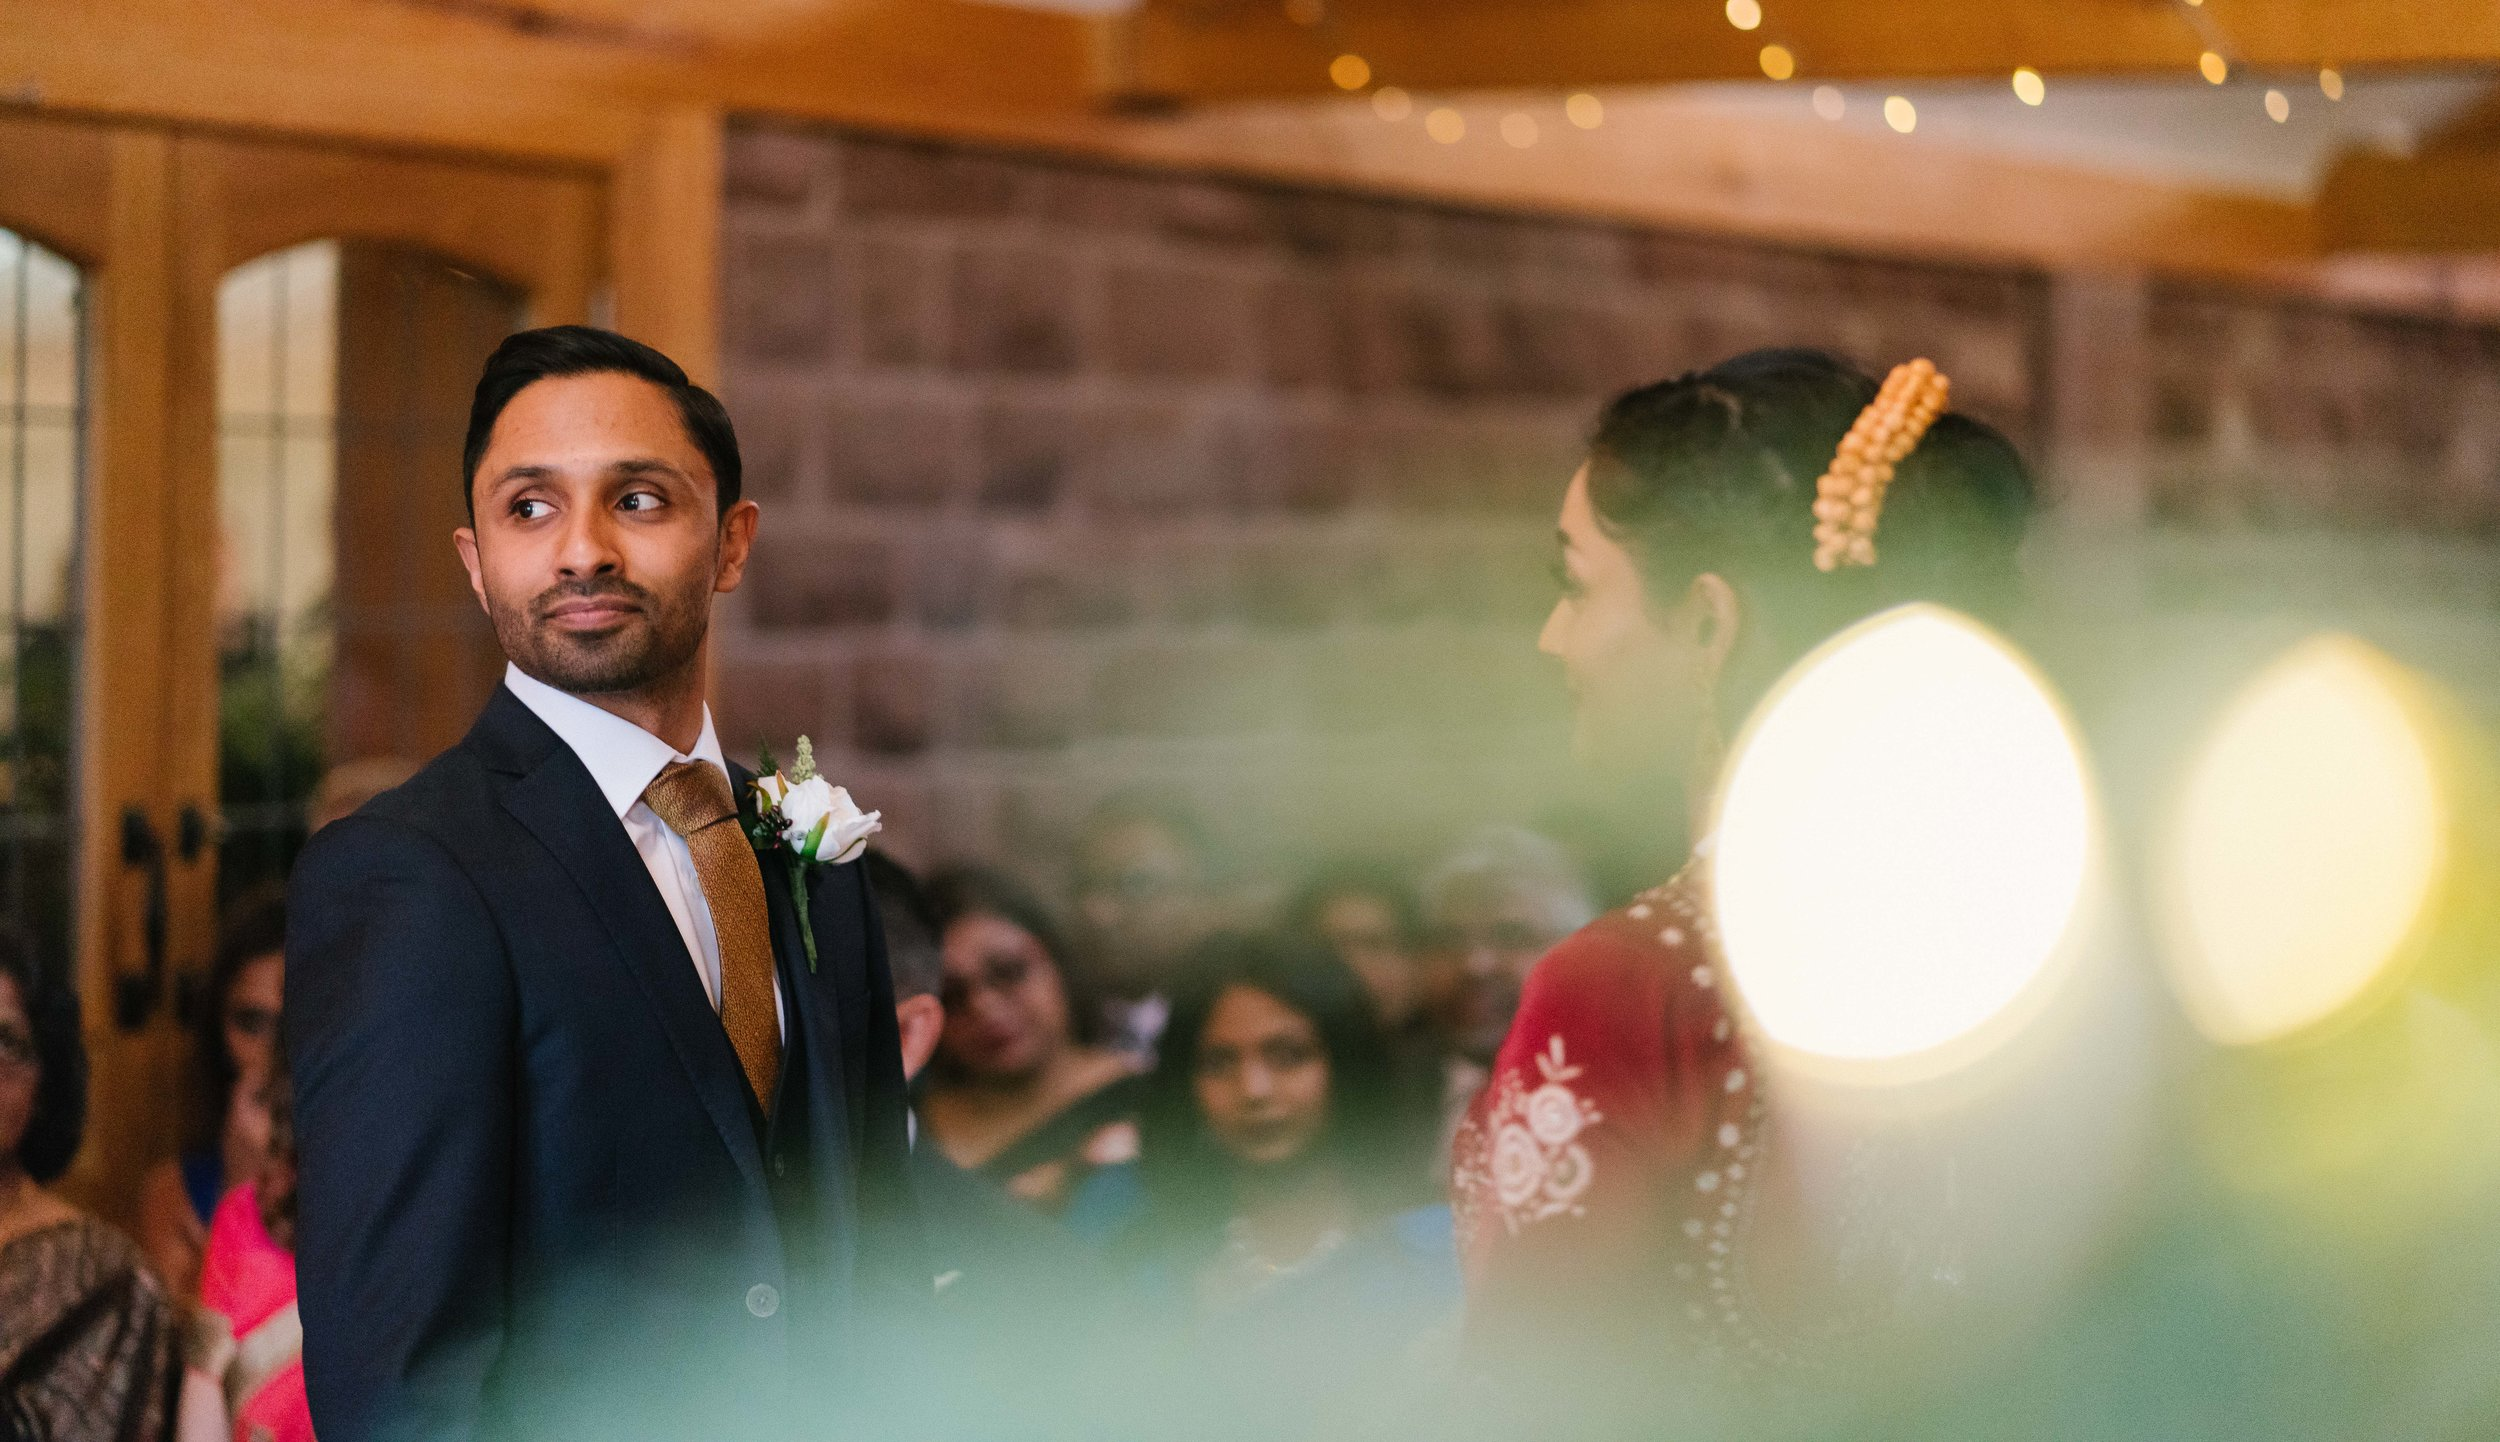 christmas-winter-wedding-photography-videography-heaton-house-35